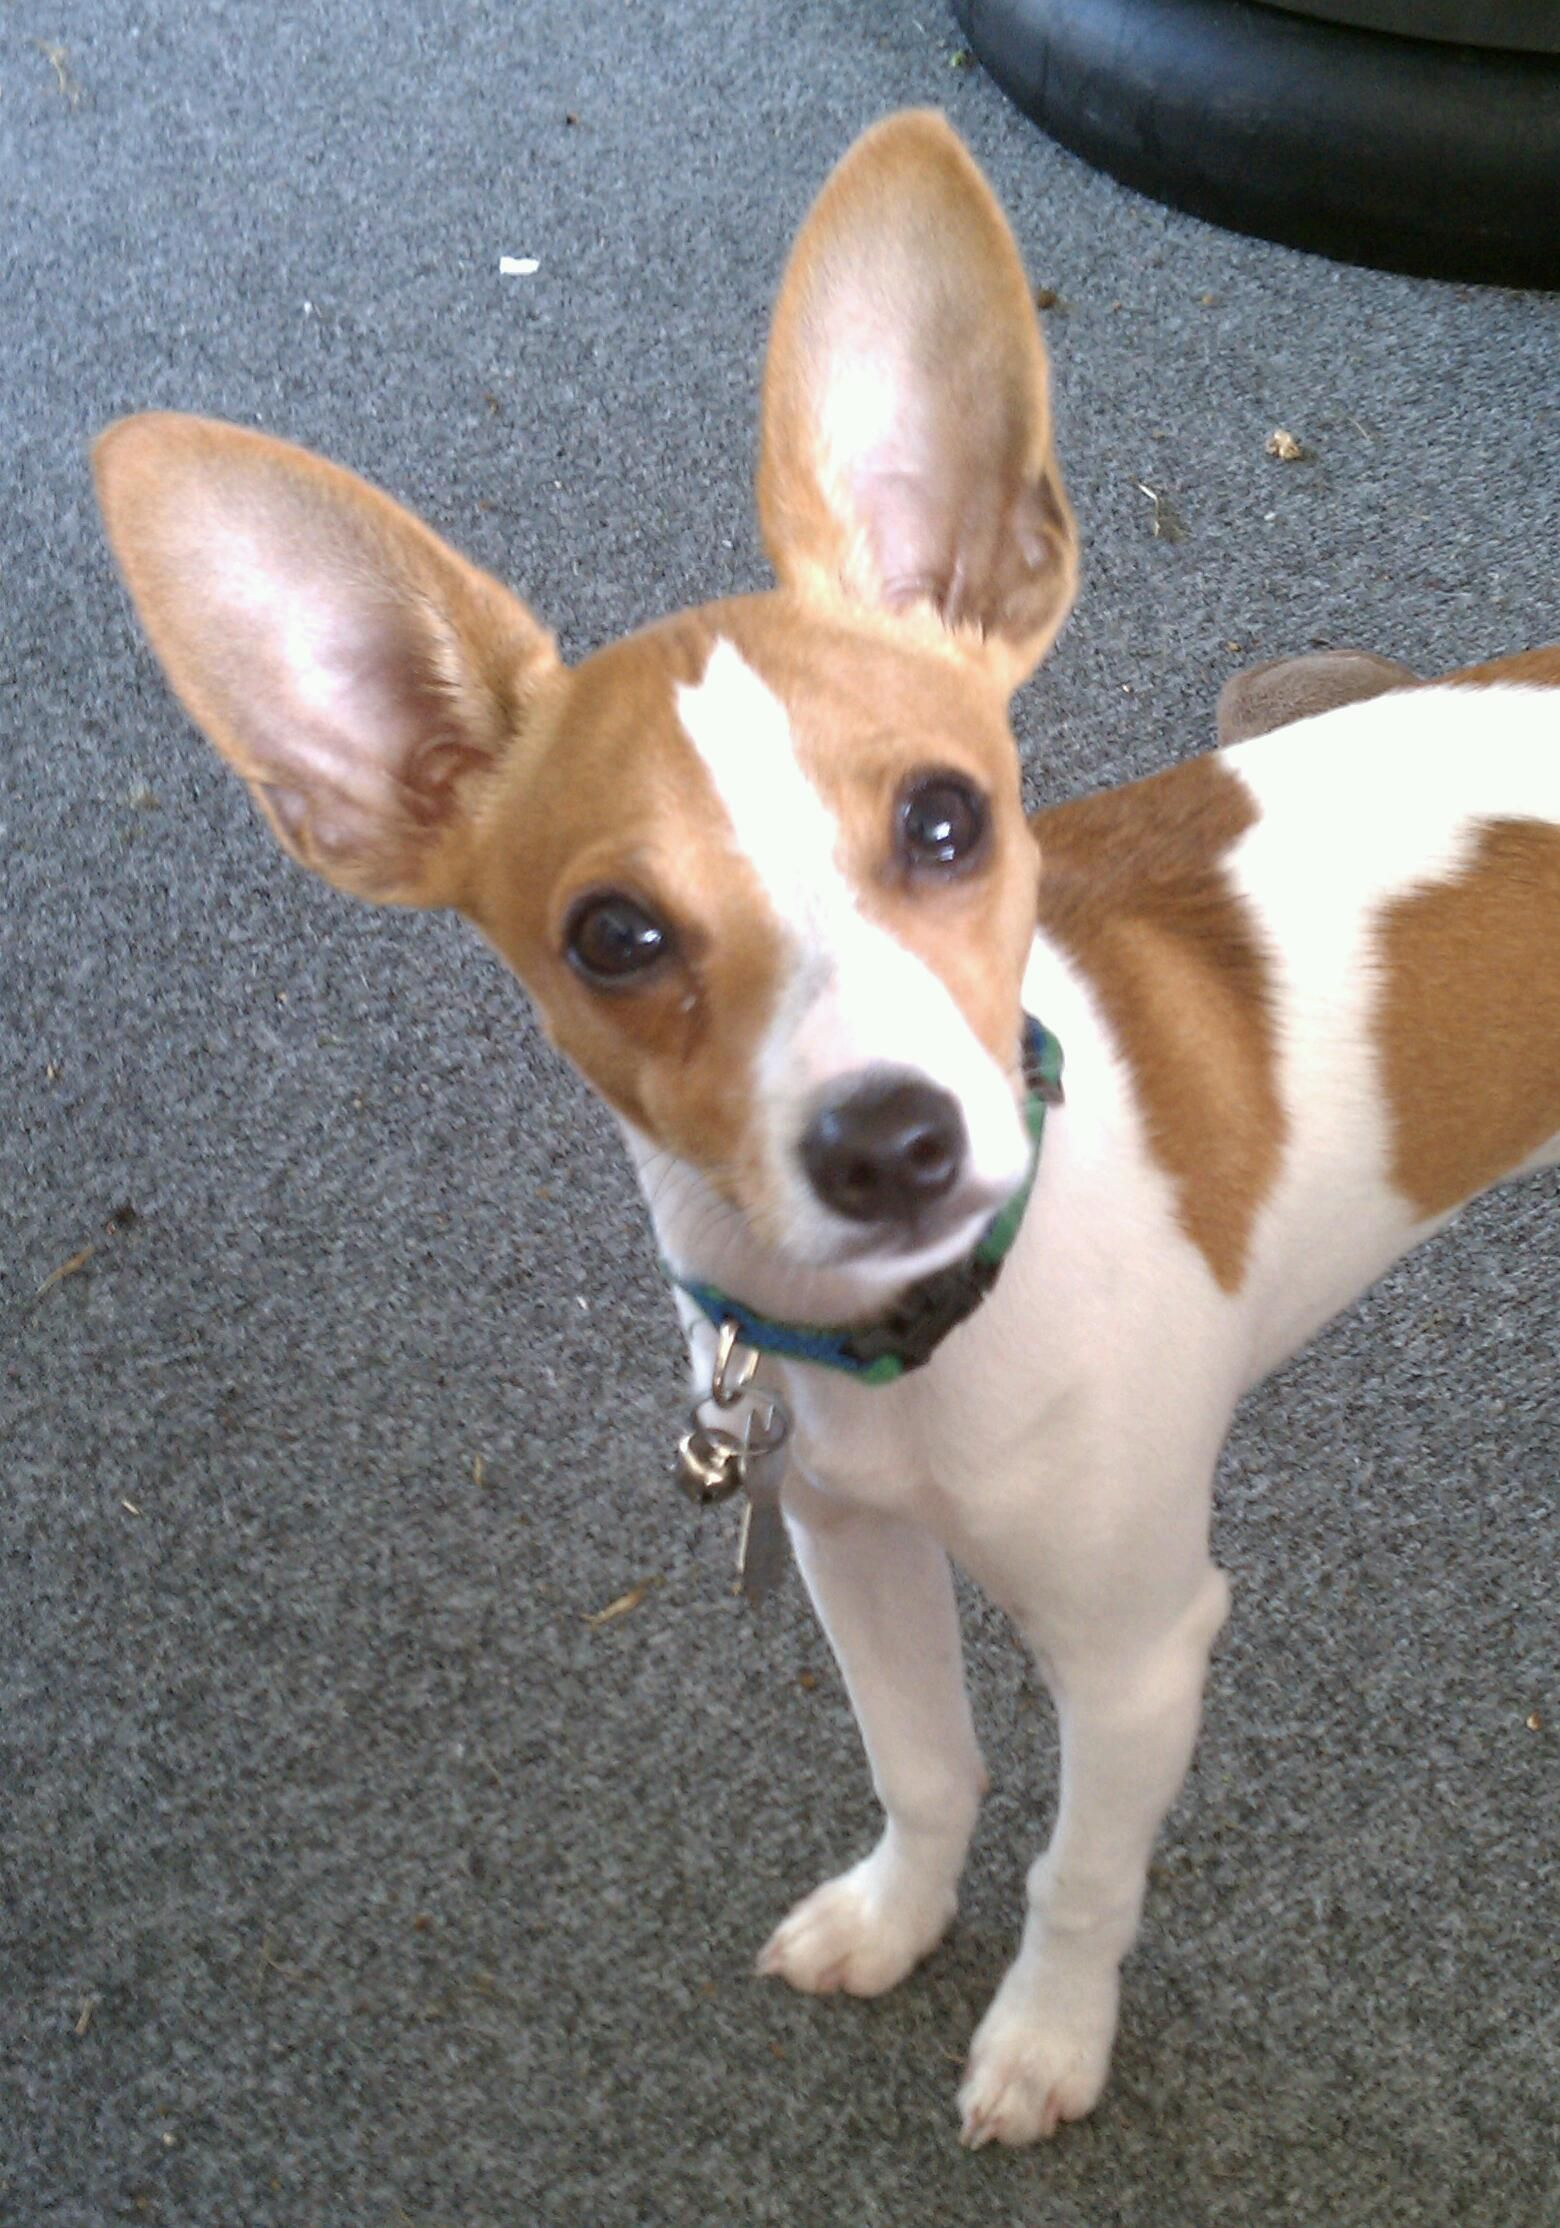 Toy Rat Terrier Puppies for Sale - DogsNow